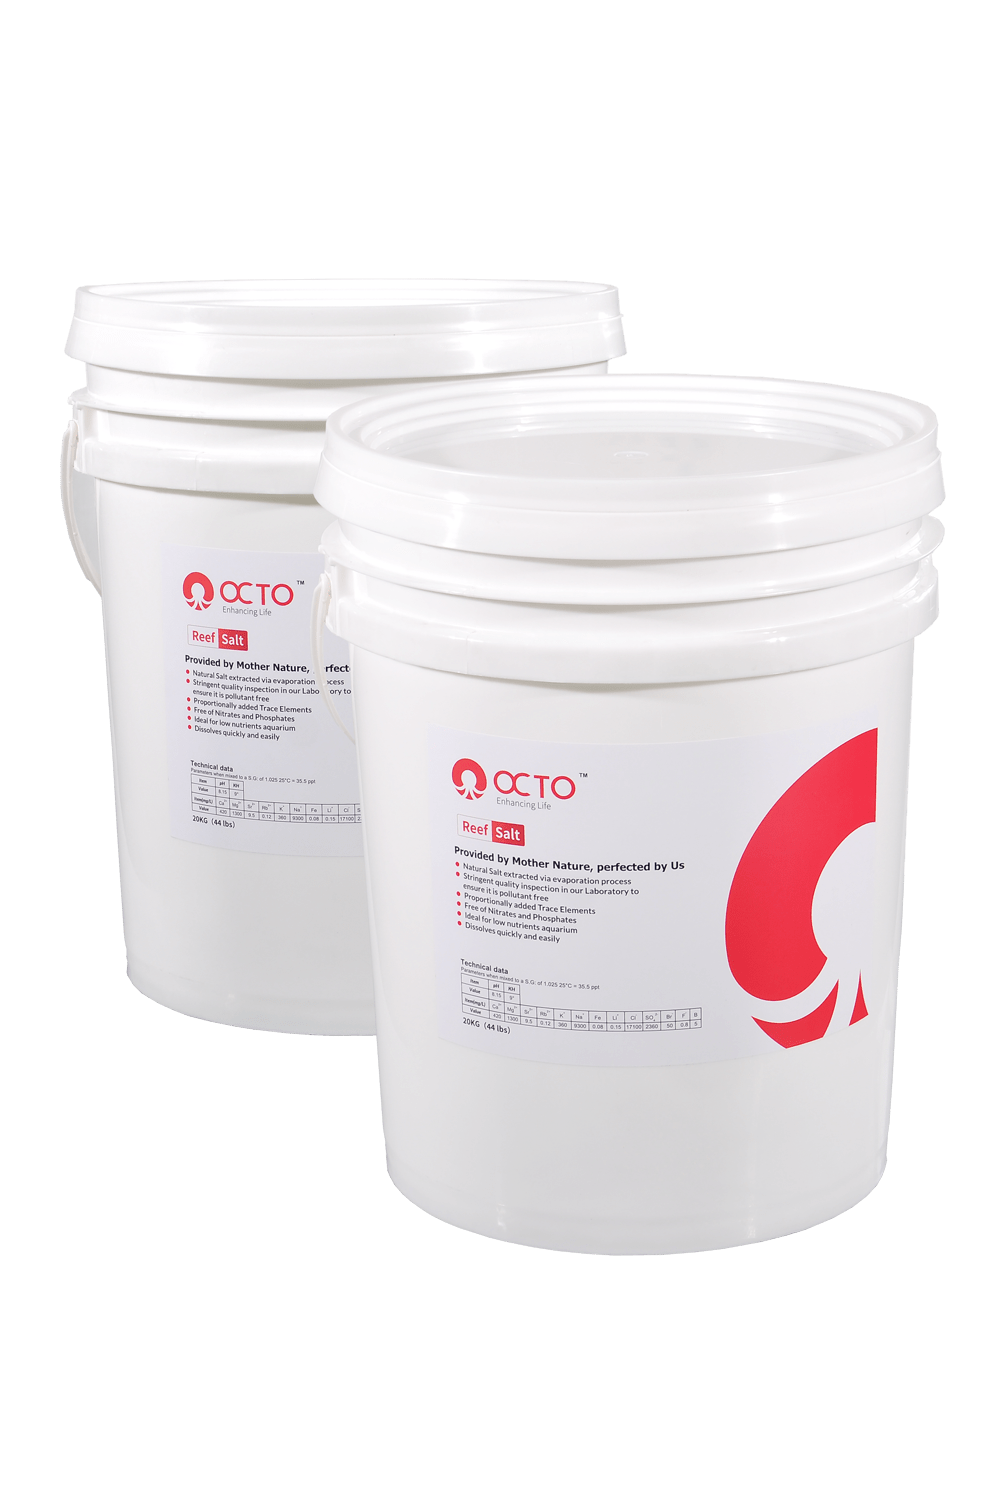 OCTO Marine Reef Salt (20kg / Bucket)